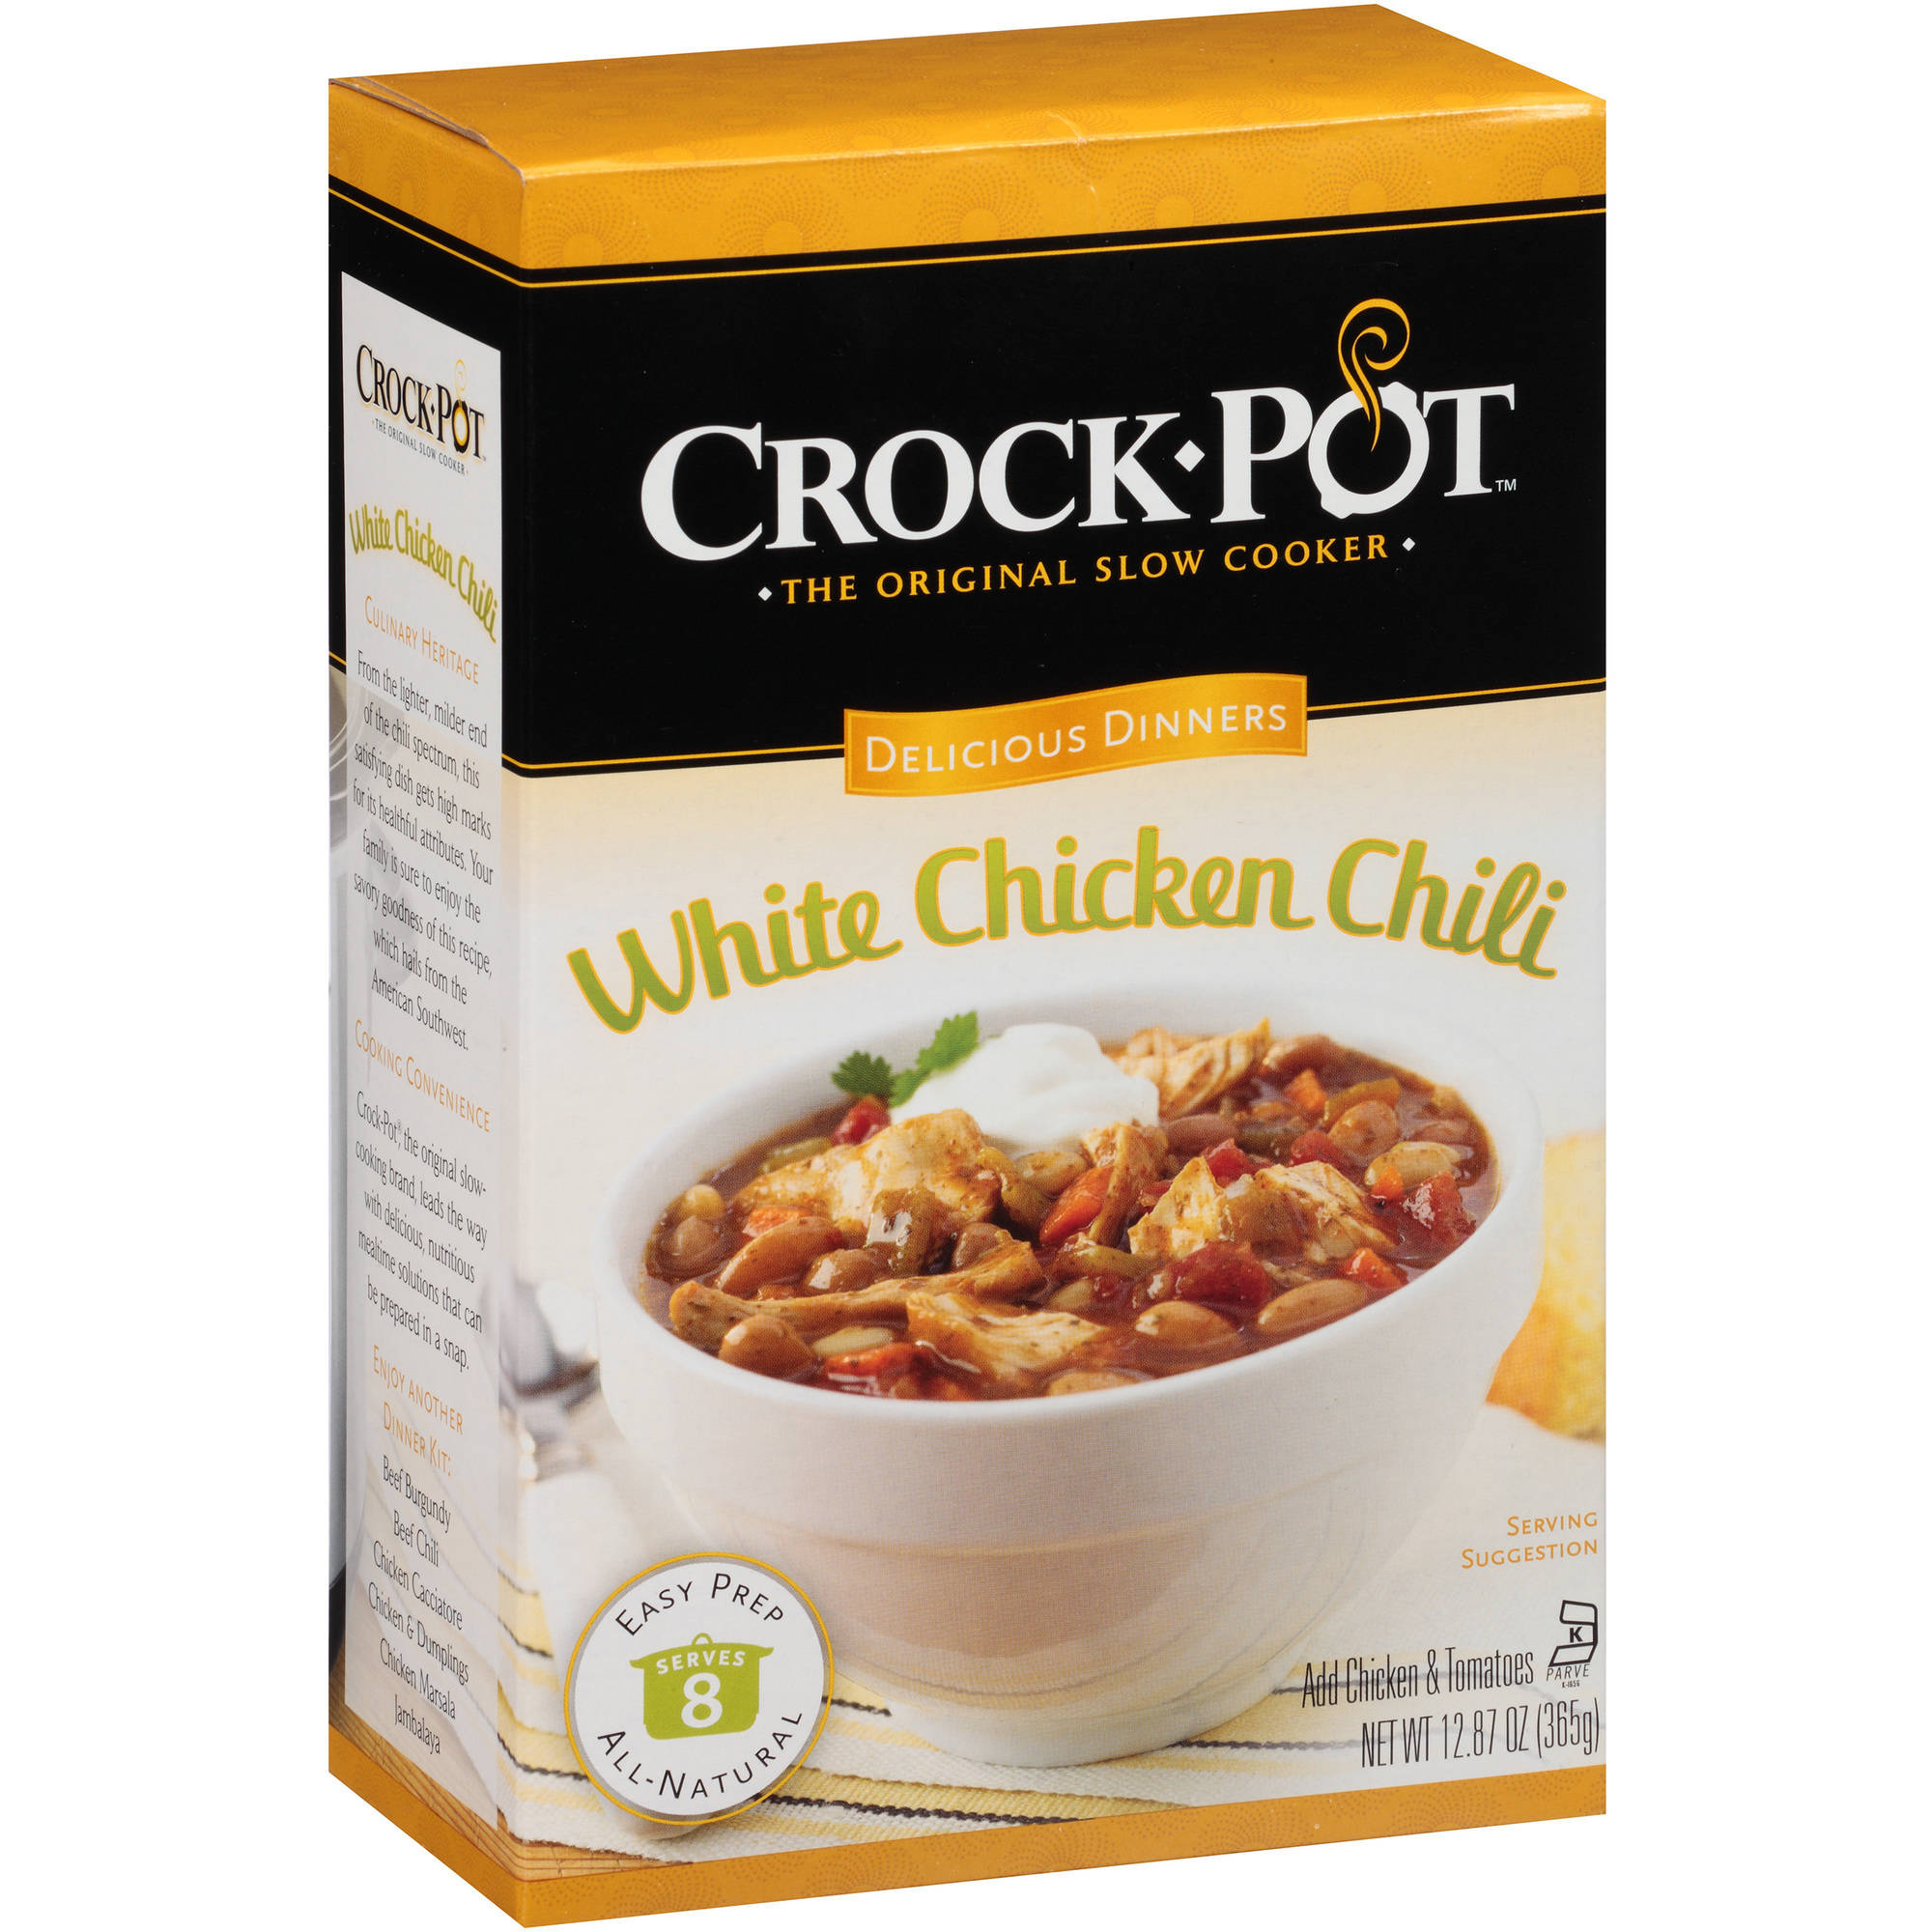 Crock-Pot Delicious Dinners White Chicken Chili Mix, 12.87 oz